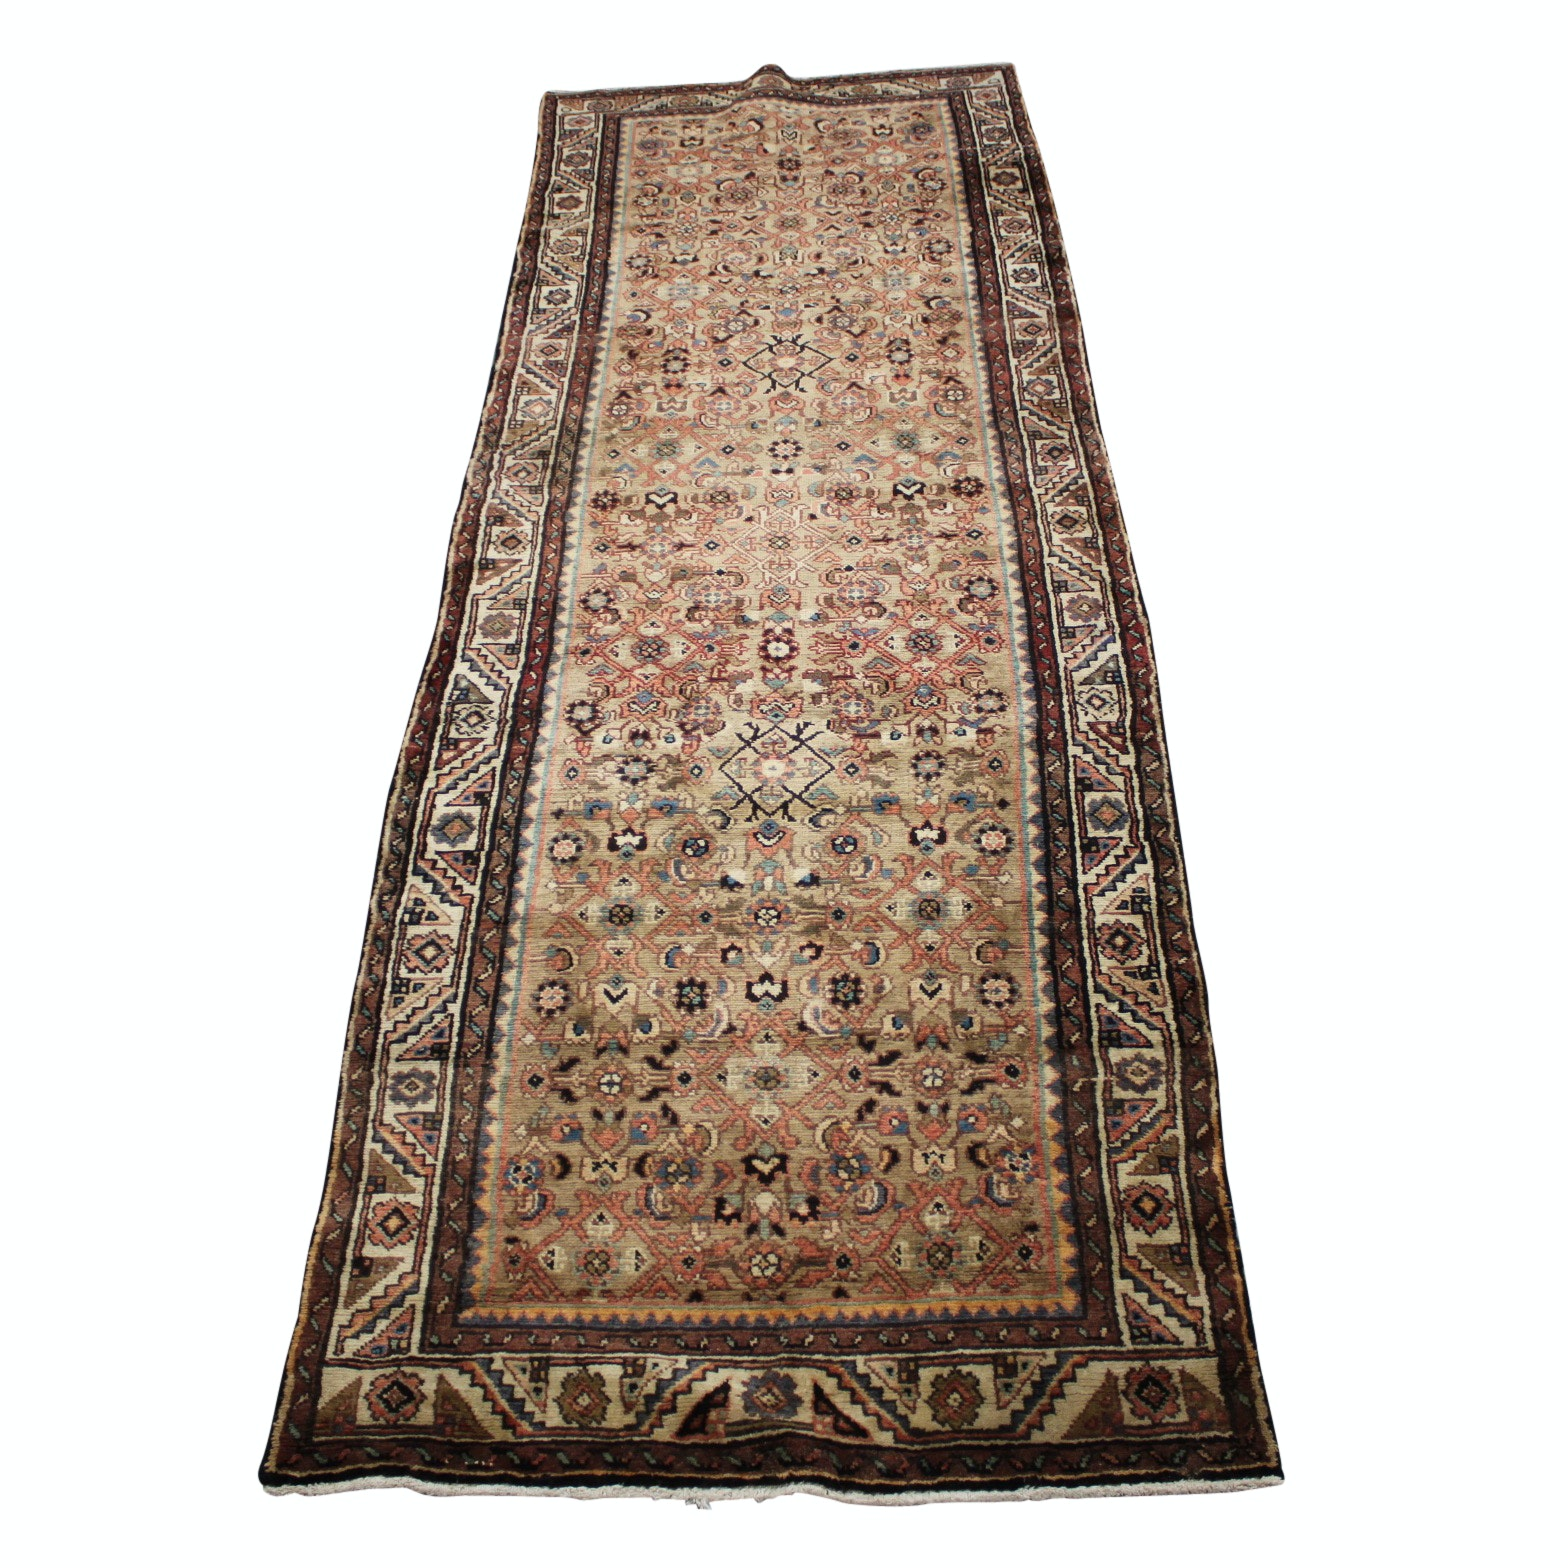 Vintage Hand-Knotted Persian Lilihan Wool Long Rug